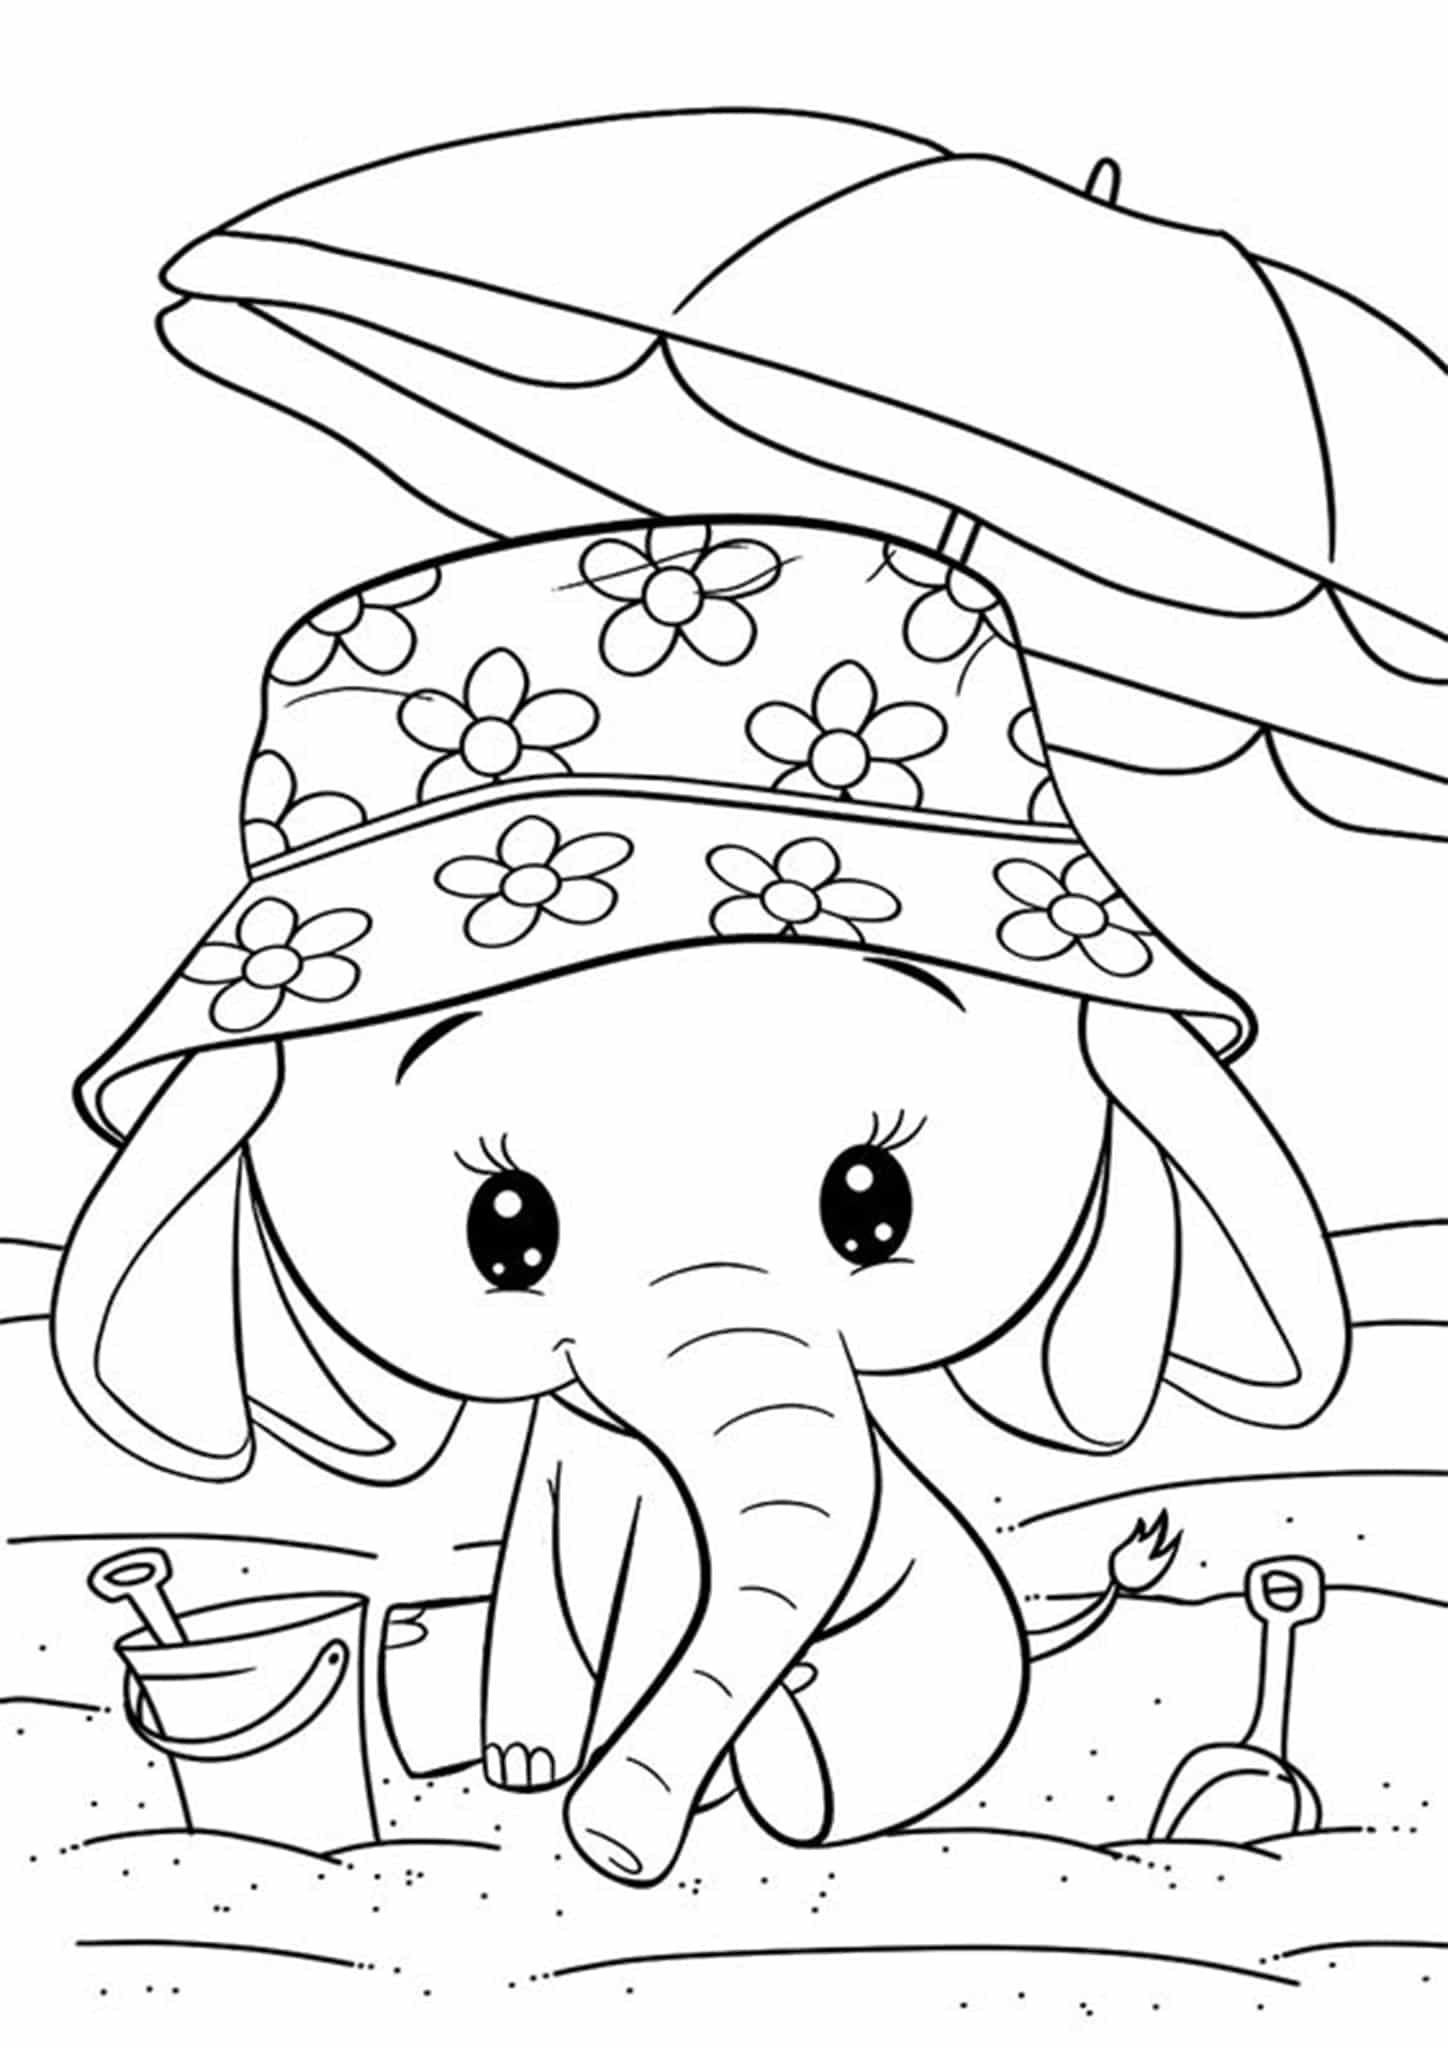 coloring pictures elephant free easy to print elephant coloring pages tulamama coloring elephant pictures